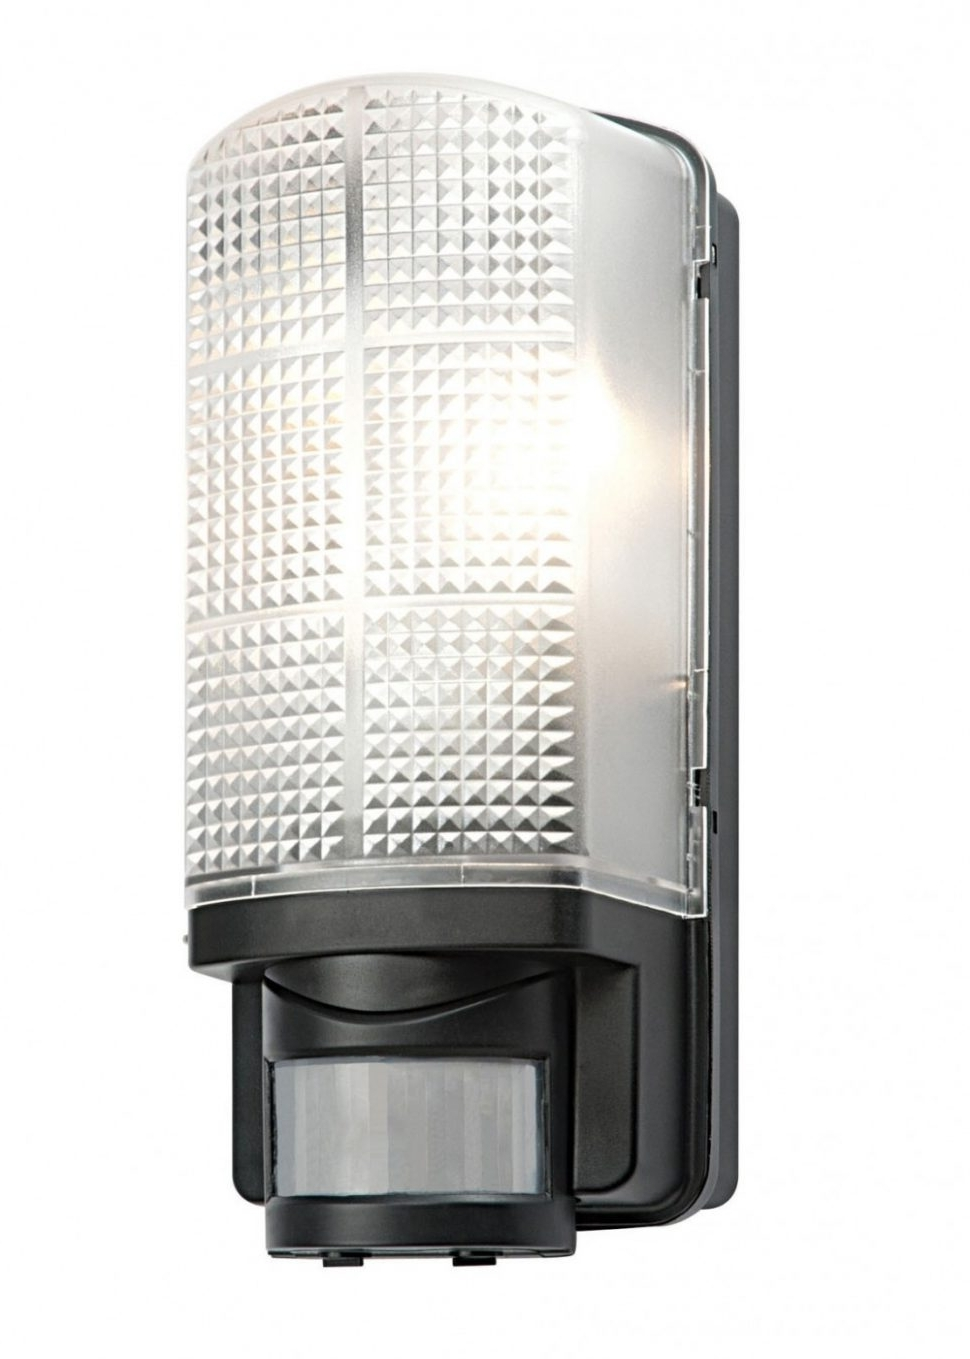 Furniture : Outdoor Wall Lights Motion Sensor Modern Light Safety Pertaining To Newest Eglo Lighting Sidney Outdoor Wall Lights With Motion Sensor (View 10 of 20)